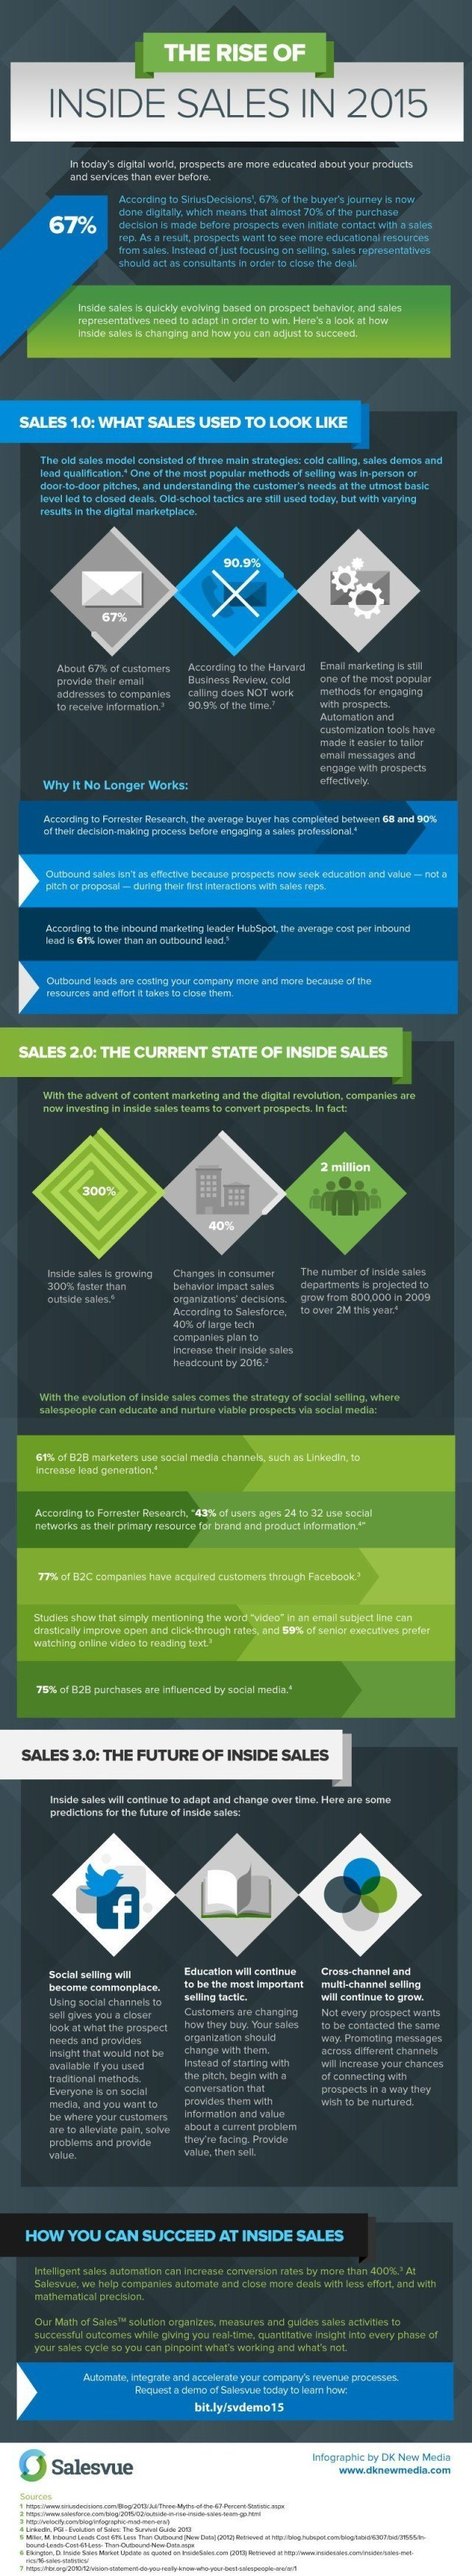 inside-sales-stats-2015-infographic1-640x3492